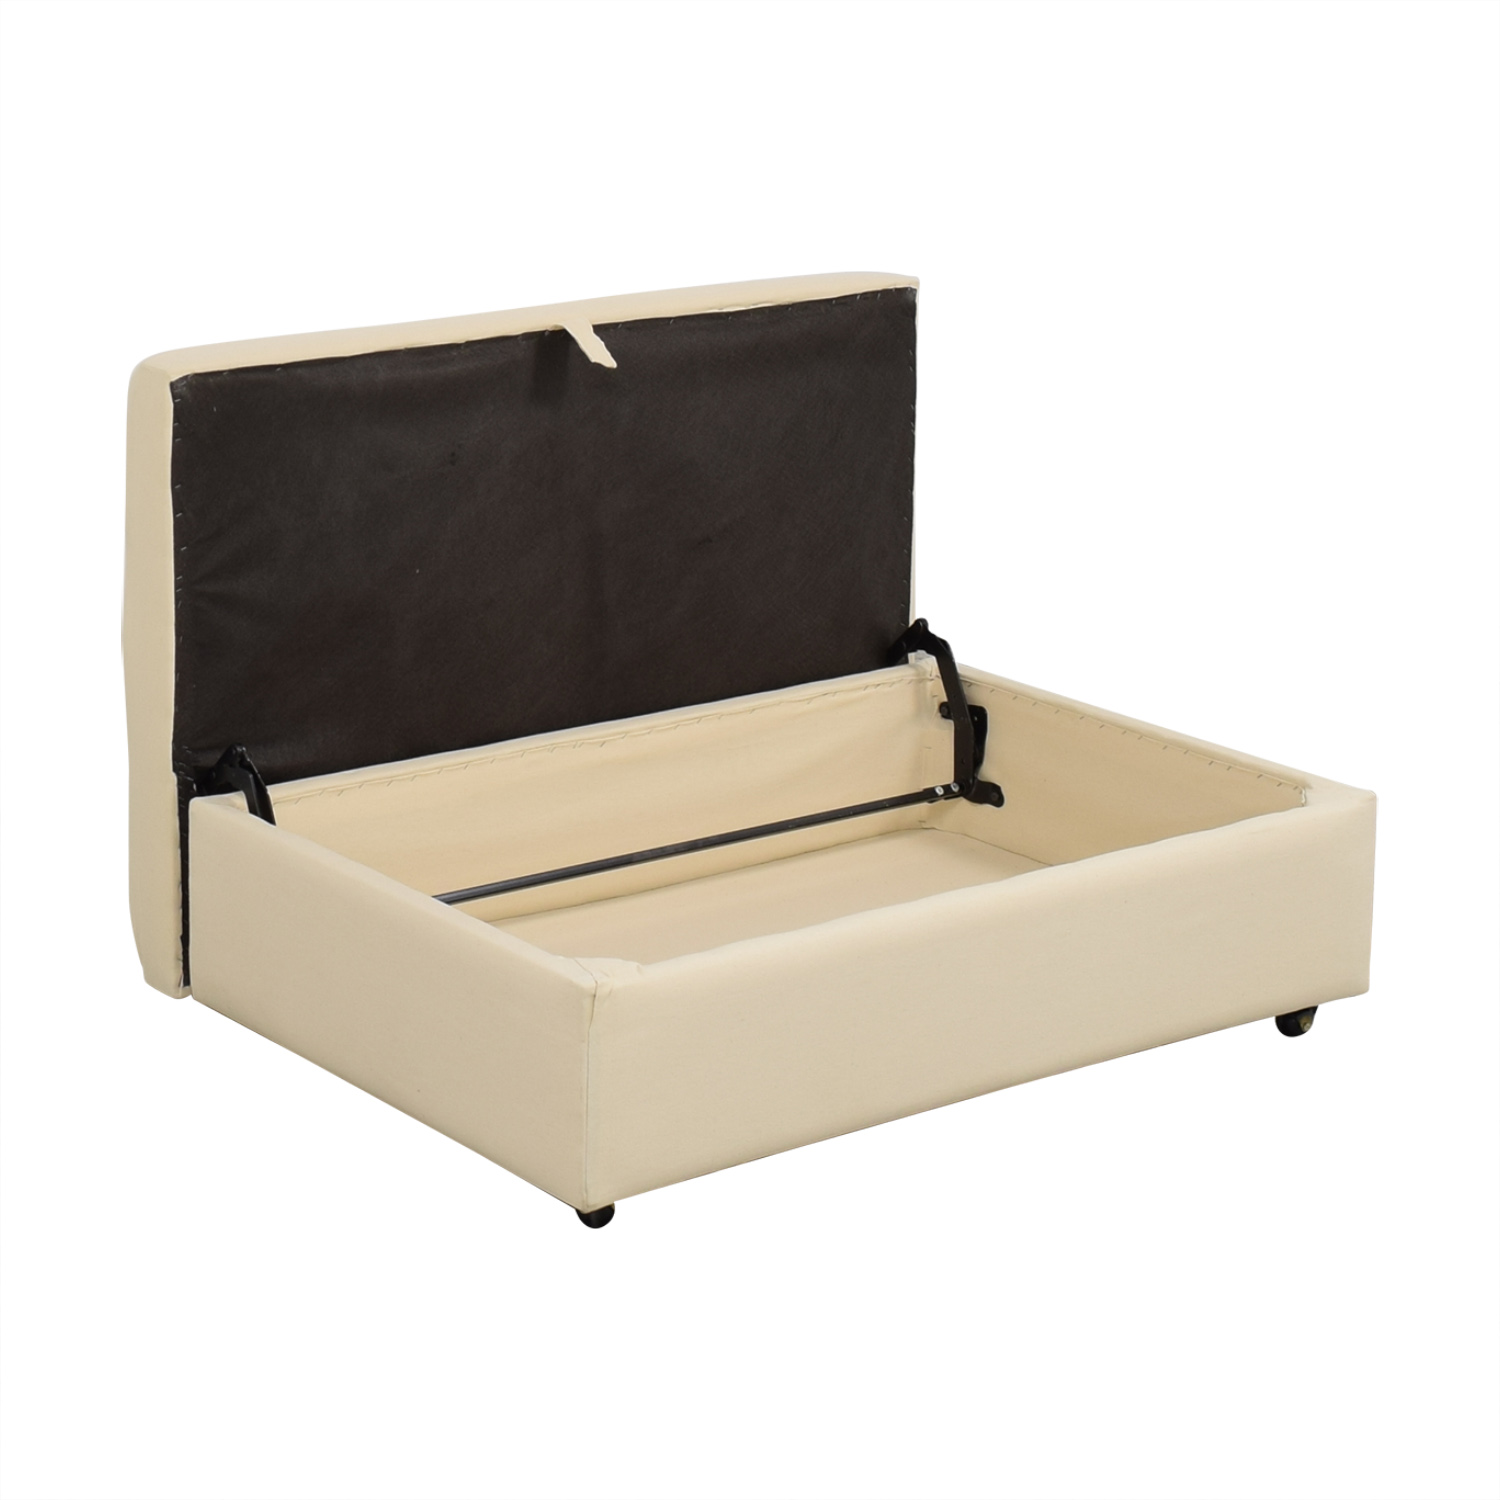 McCreary Modern Storage Ottoman McCreary Modern